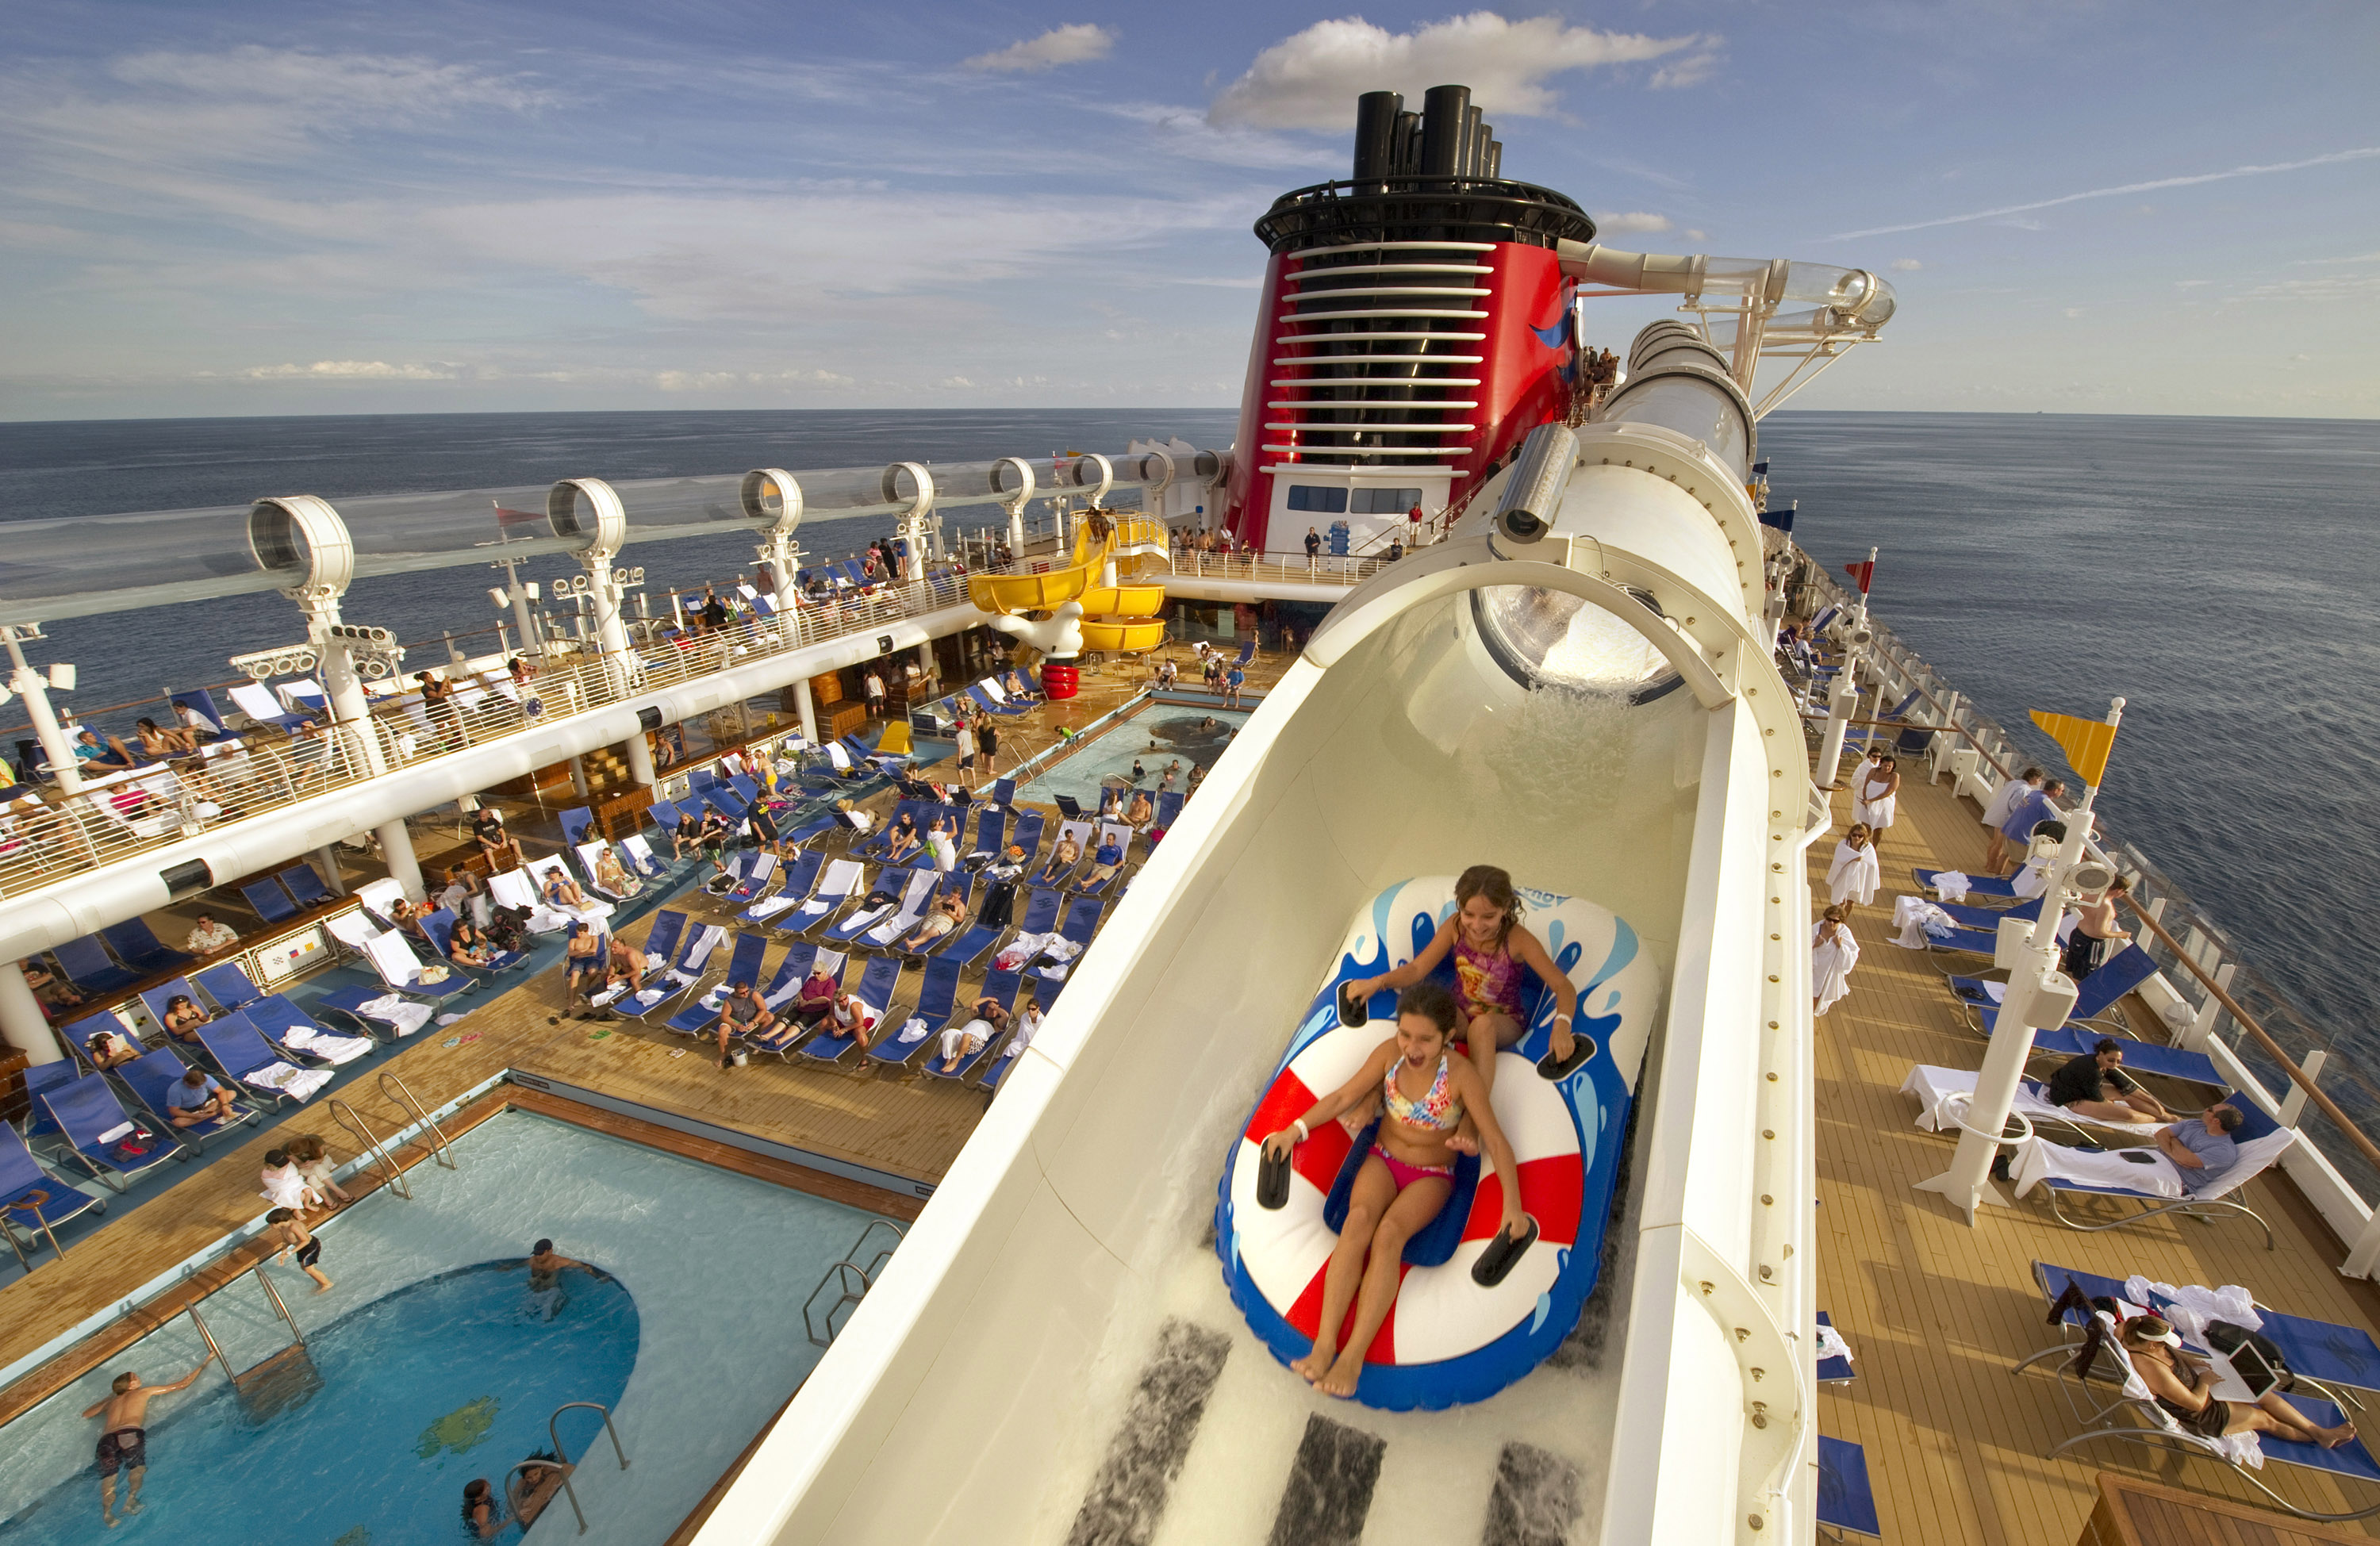 Beyond Mickey Mouse Disney Tops Cruise Ship Rankings Cnn